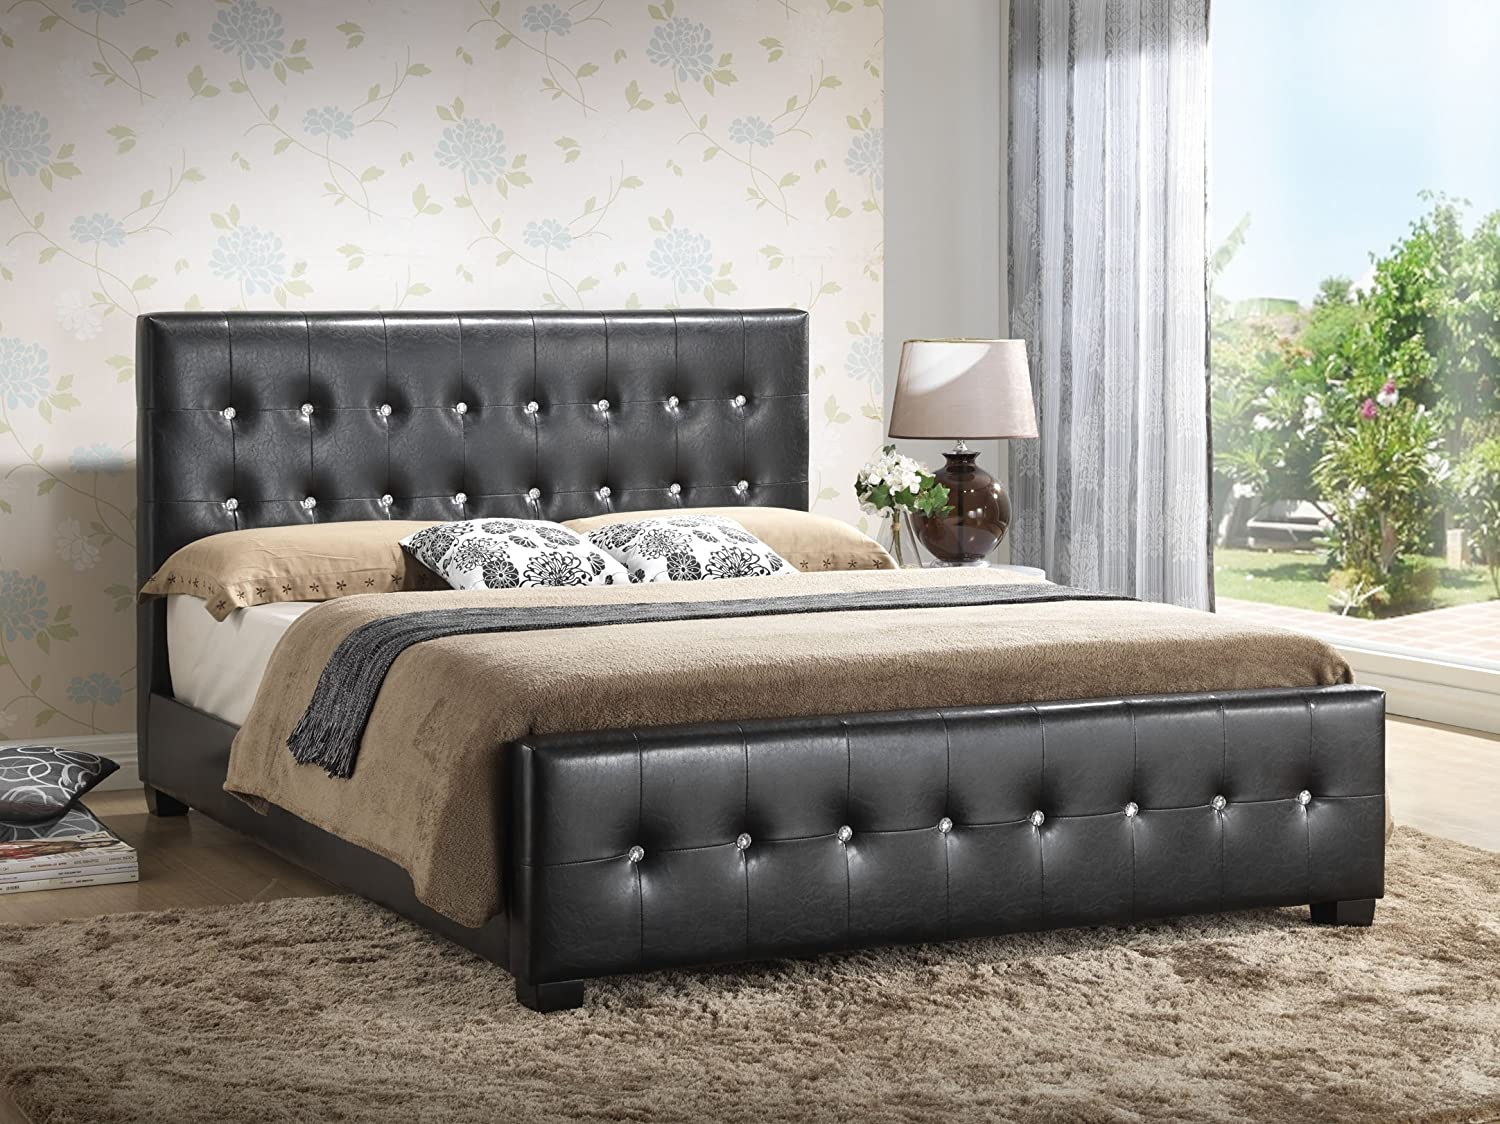 Amazon.com: Black - Queen Size - Modern Headboard Tufted Design ...